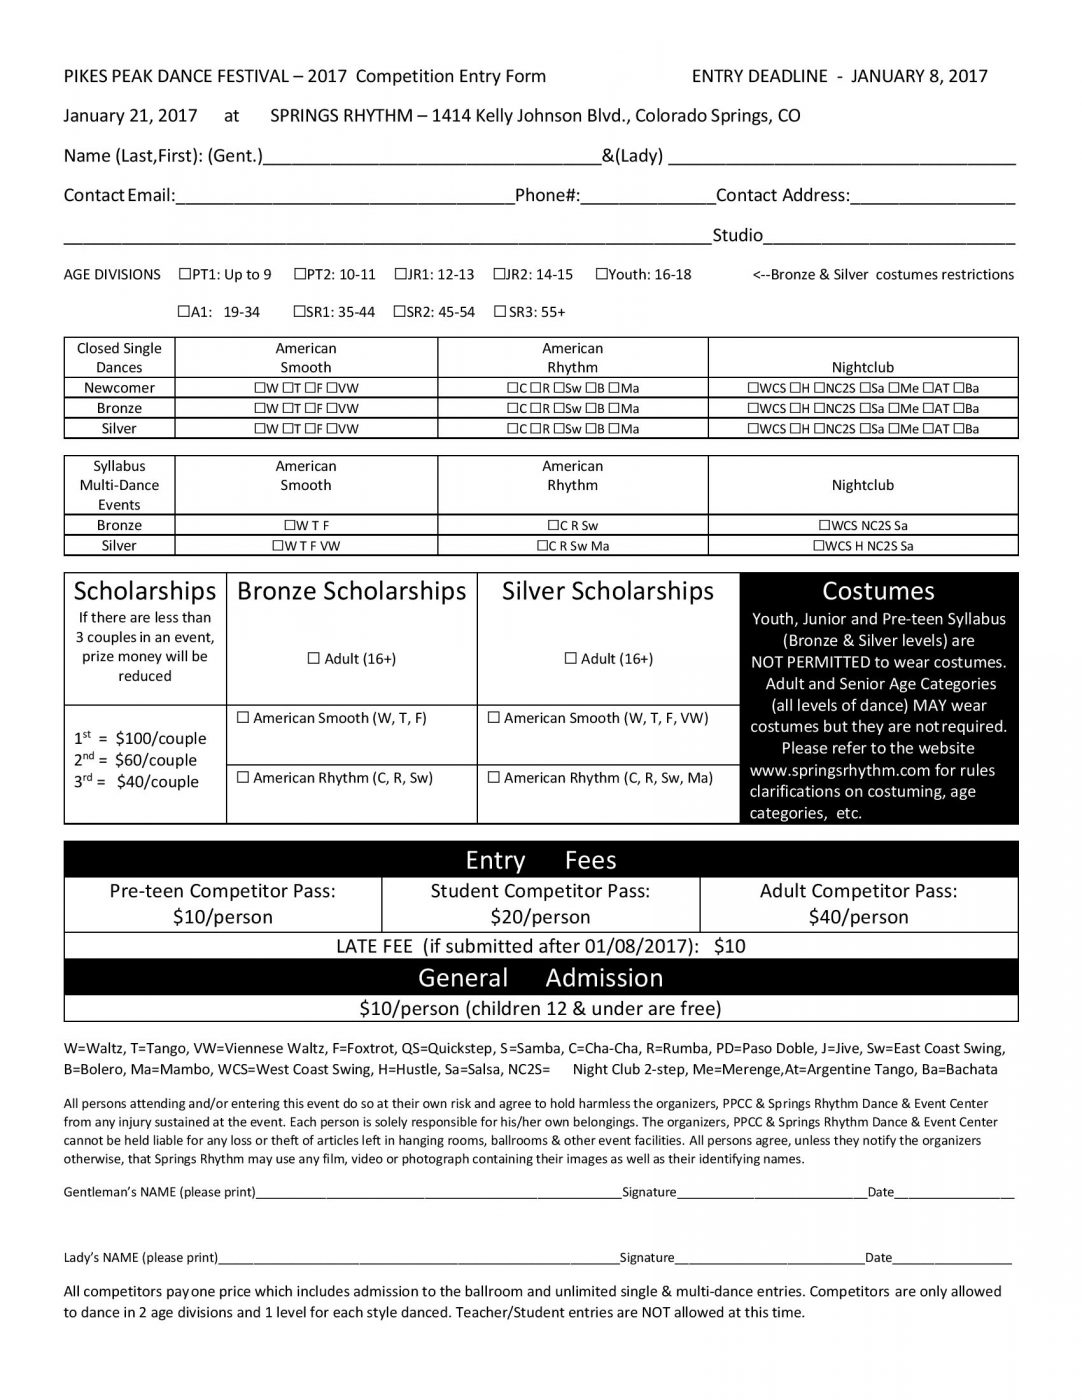 pikes-peak-dance-festival_fall_2017_comp_entry_form